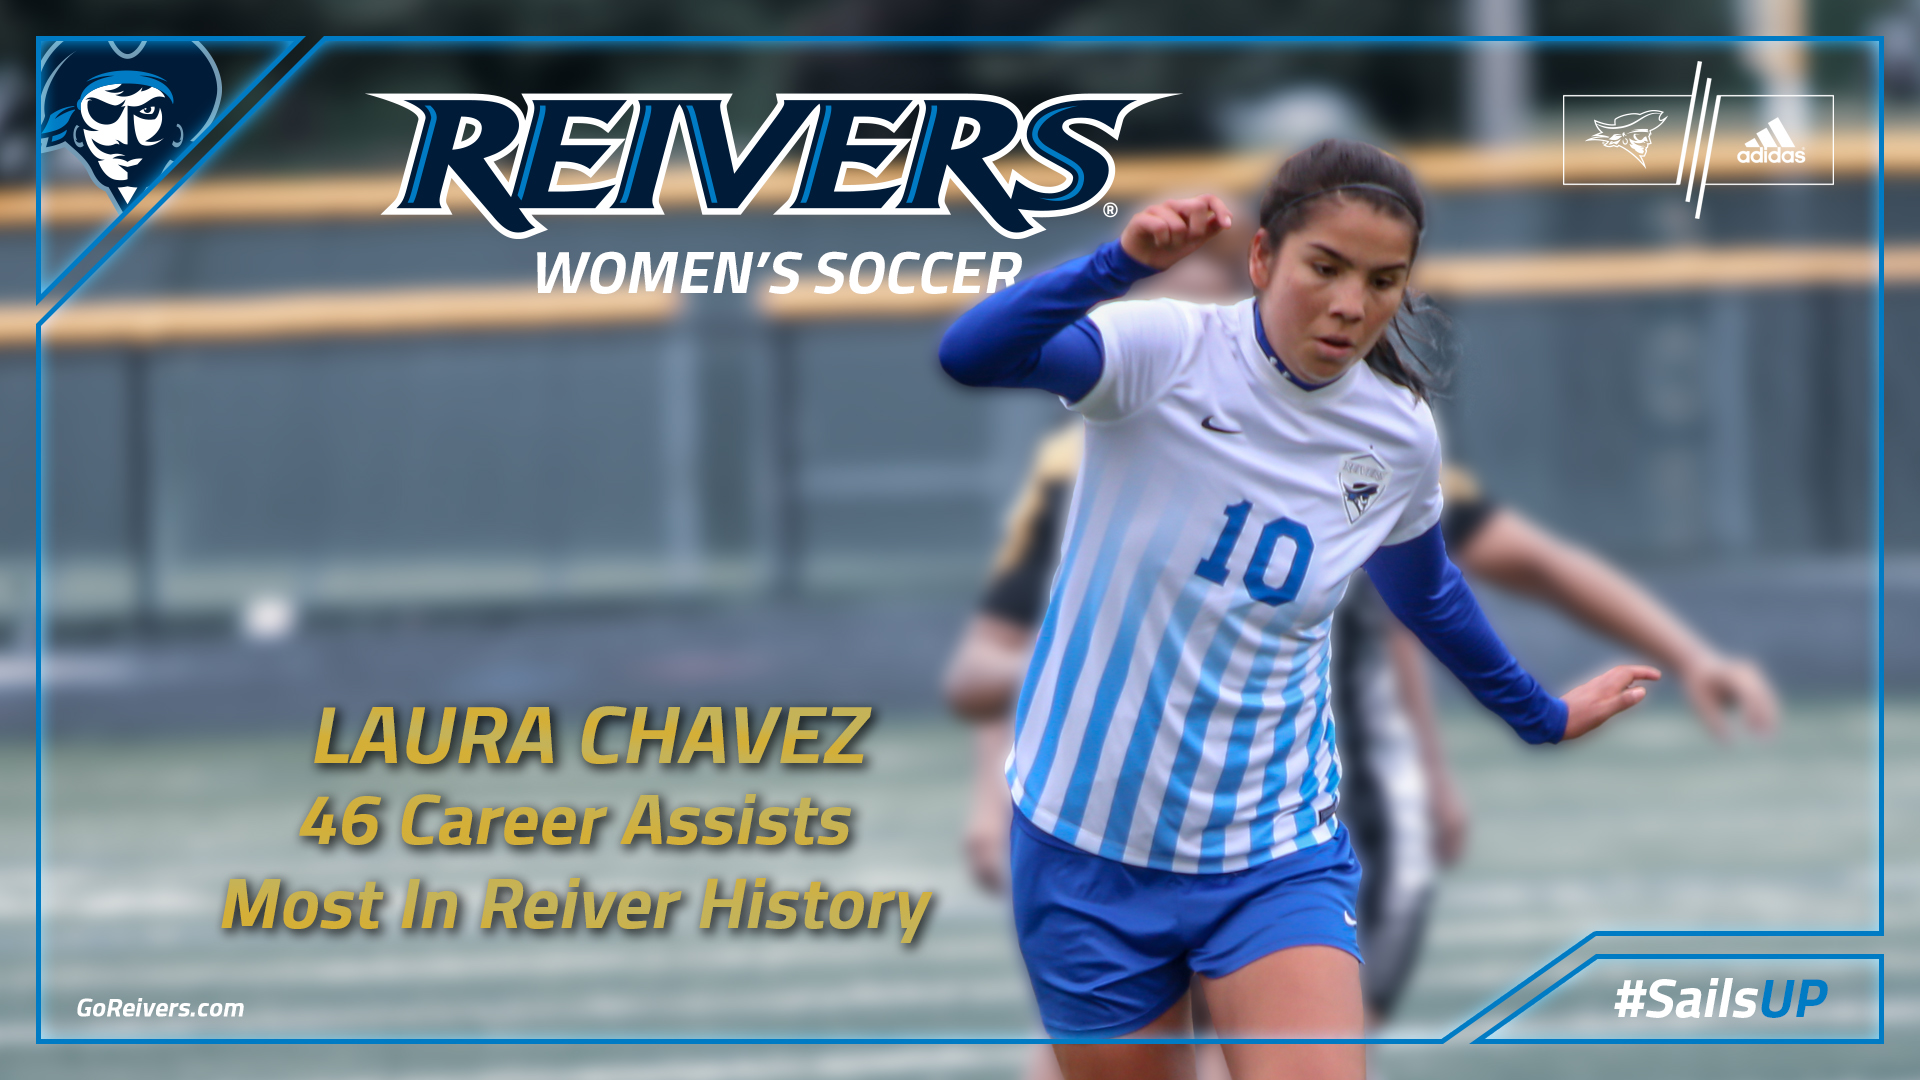 Happy to help, Reiver Women's Soccer has new season and career record holder for assists in Chavez!